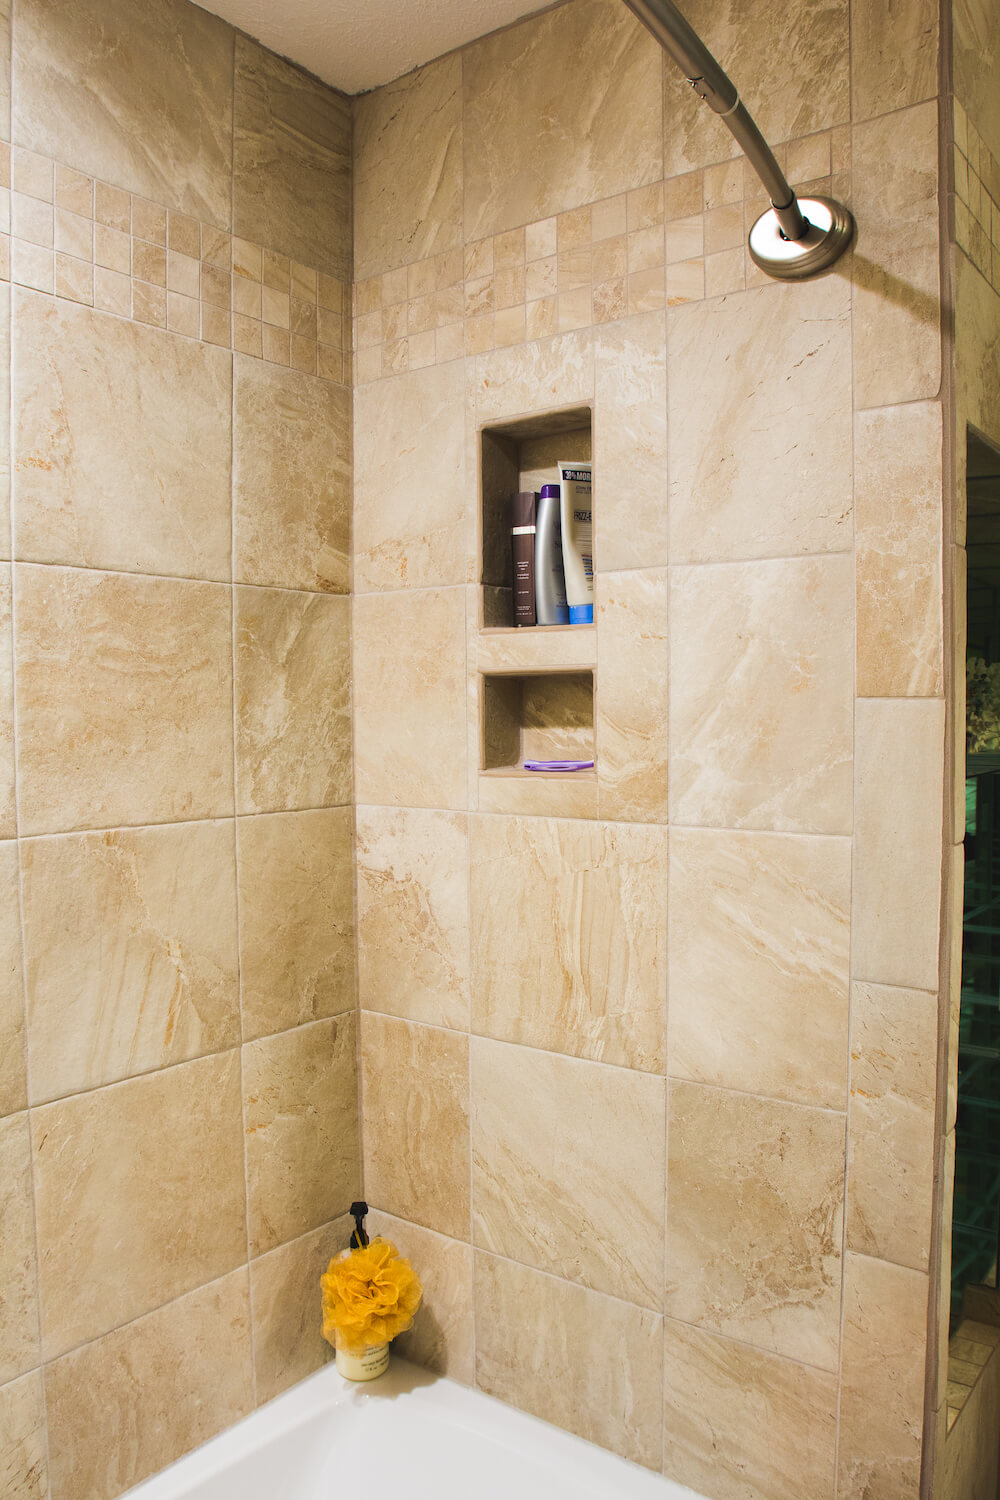 Regrouting Shower Tile Cost Regrout Shower Price - Regrouting bathroom shower tile